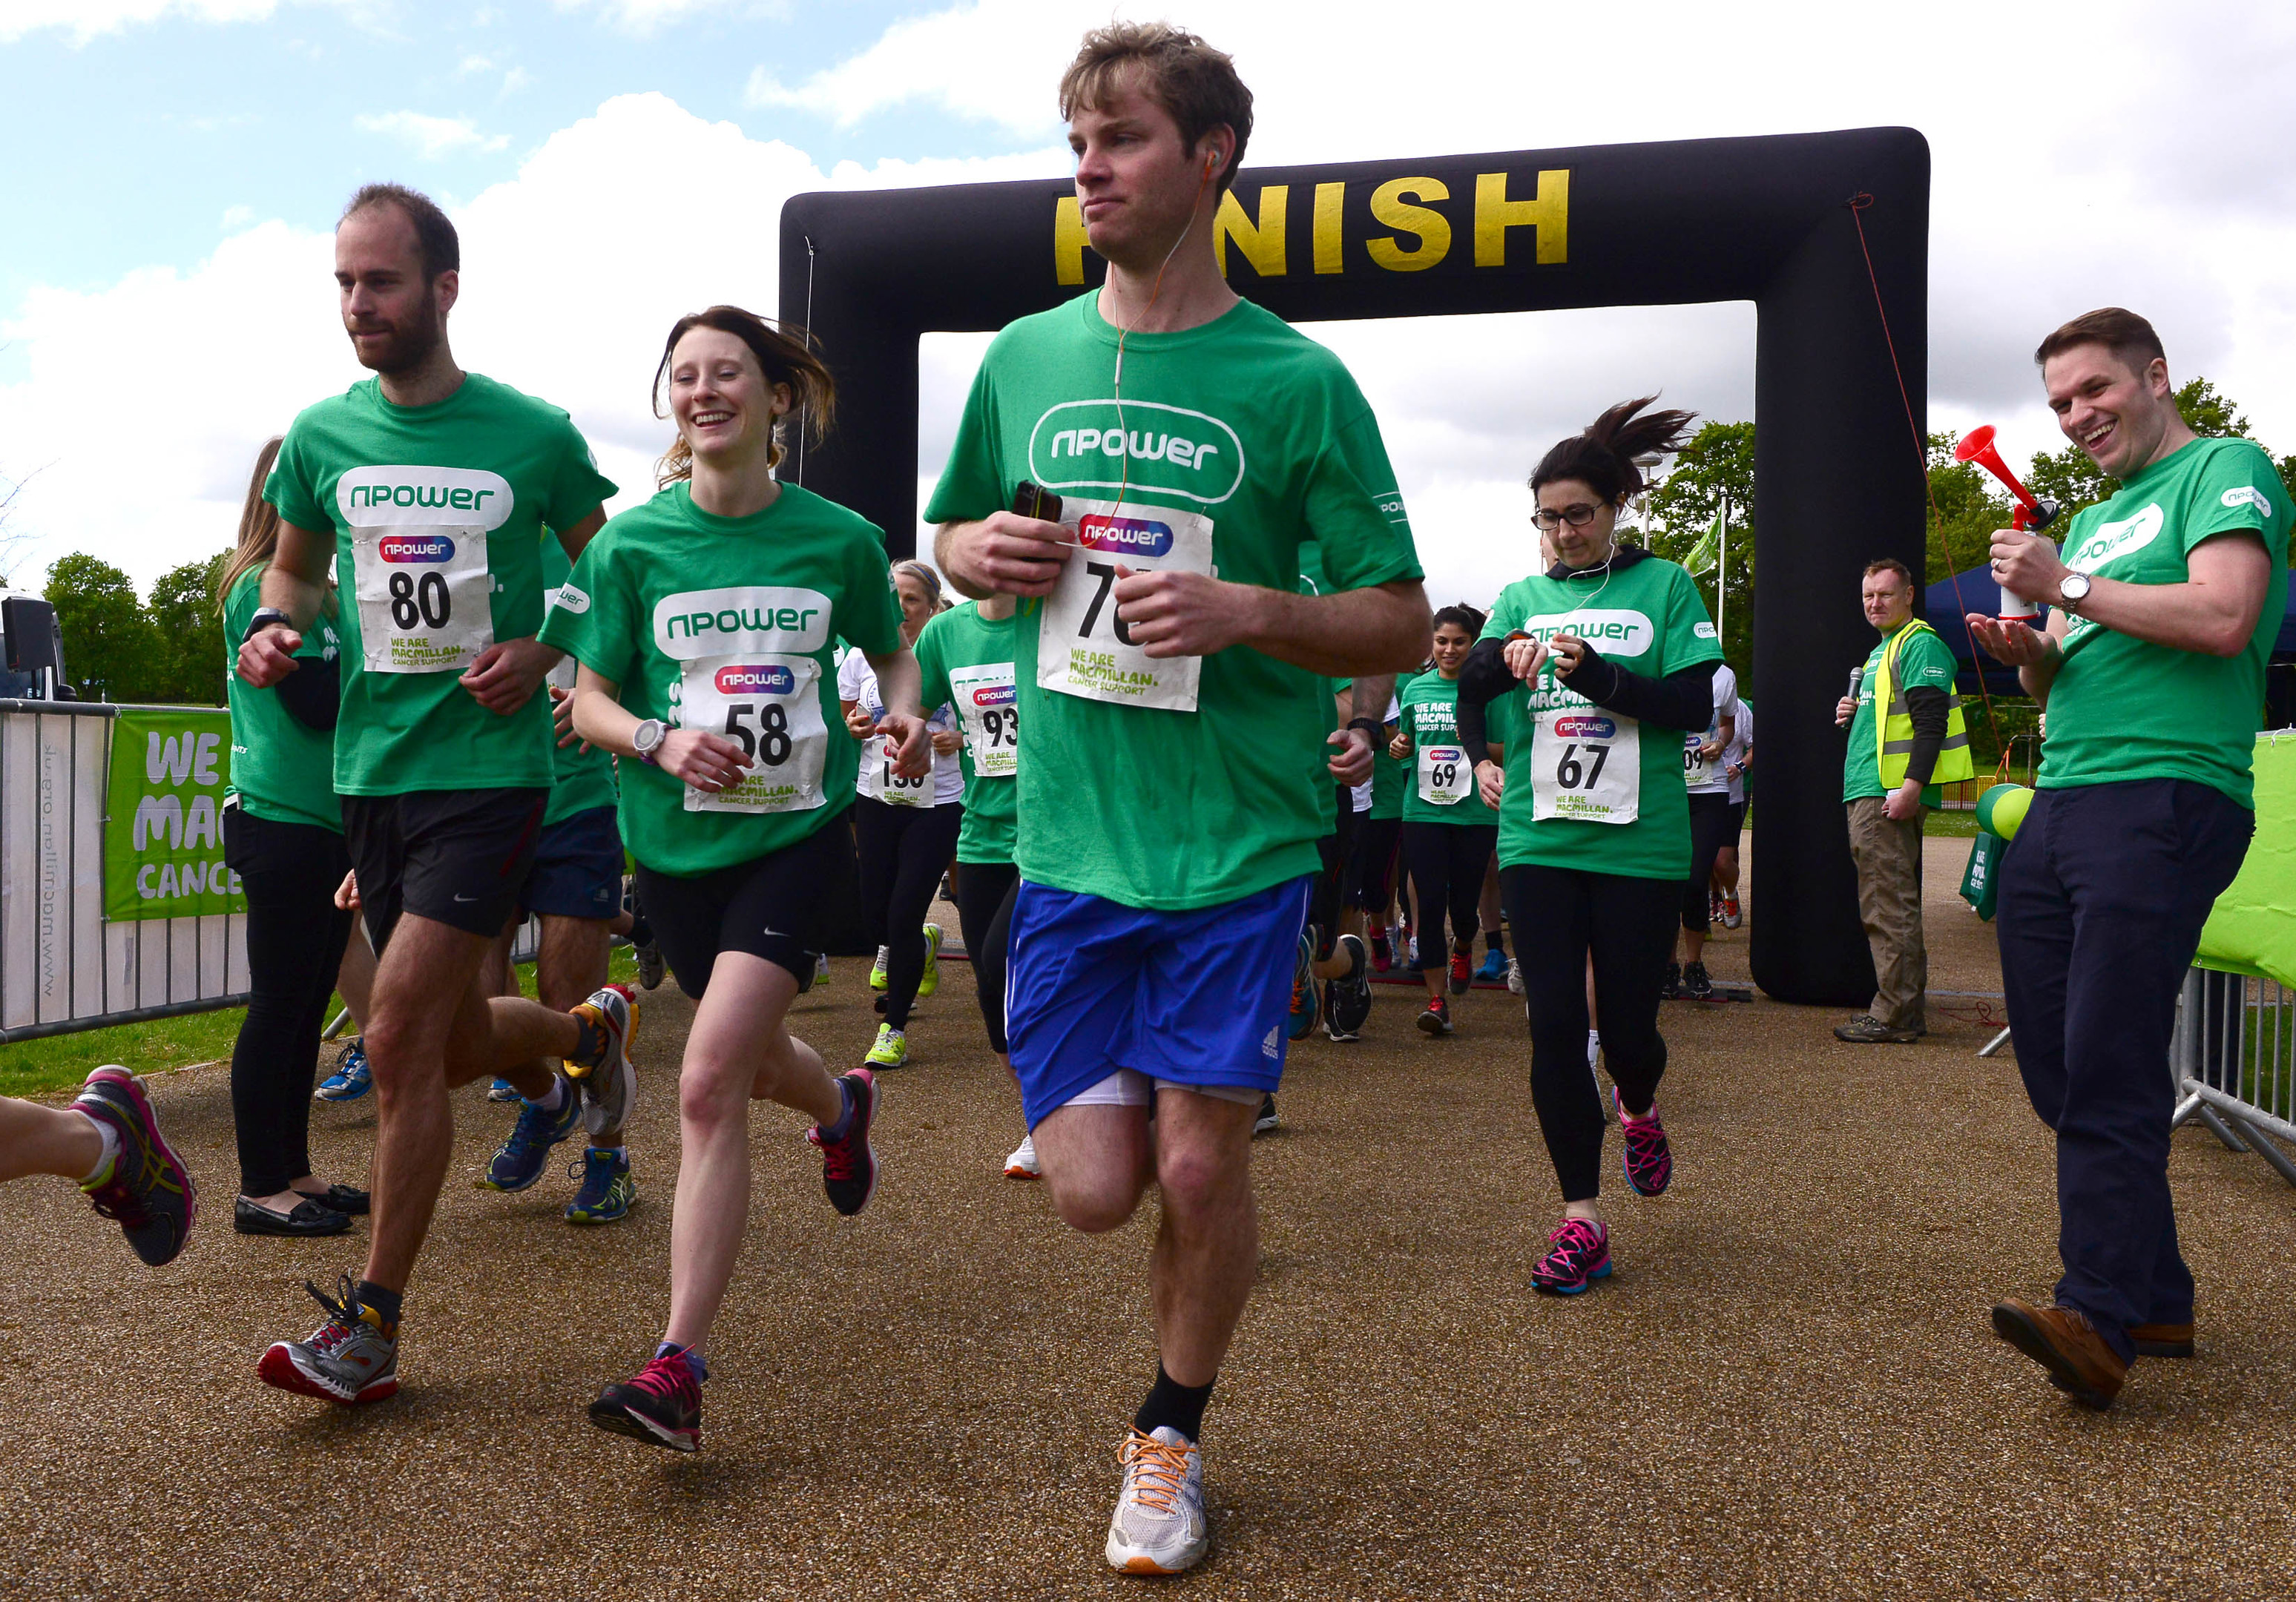 Npower's 10K team volunteering and running for Macmillan Cancer Support